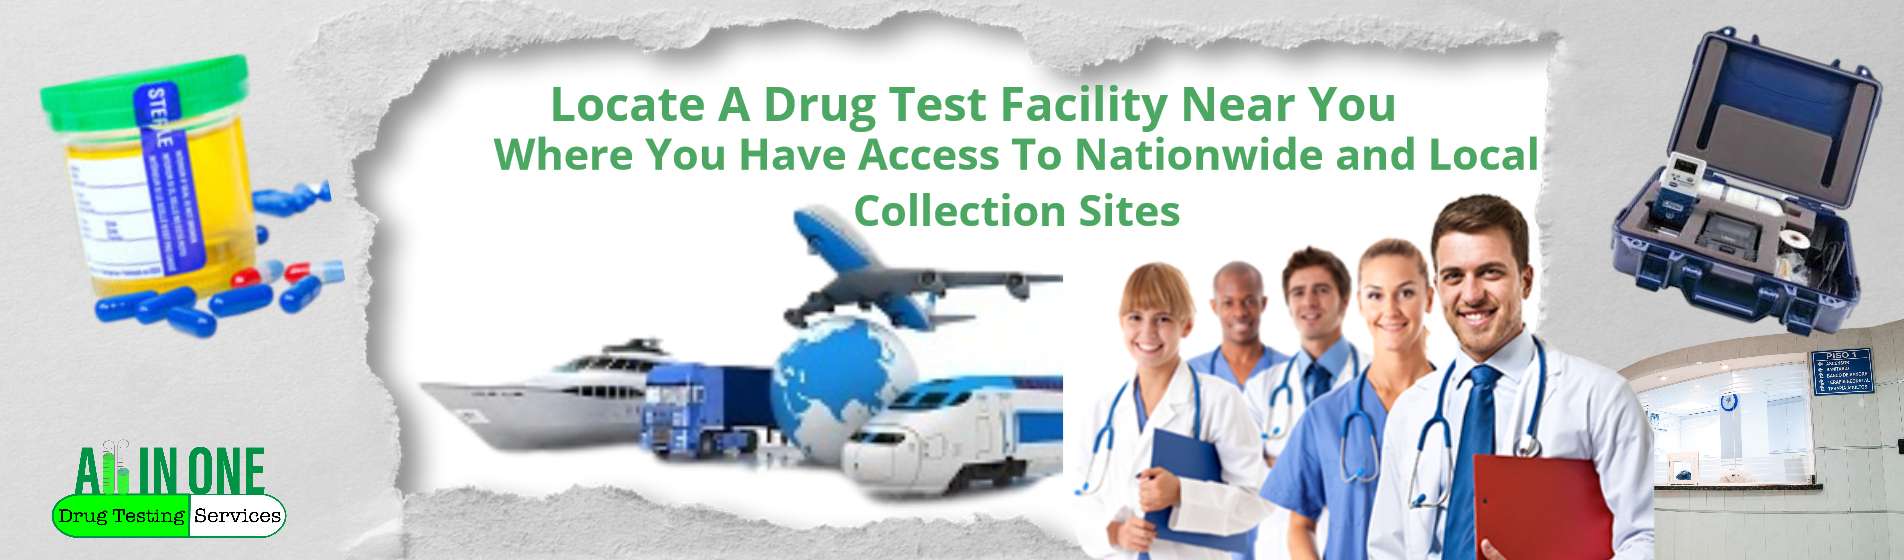 local drug test facilities, drug testing facilities near me, drug testing facilities in charlotte, nc, urine drug testing near me